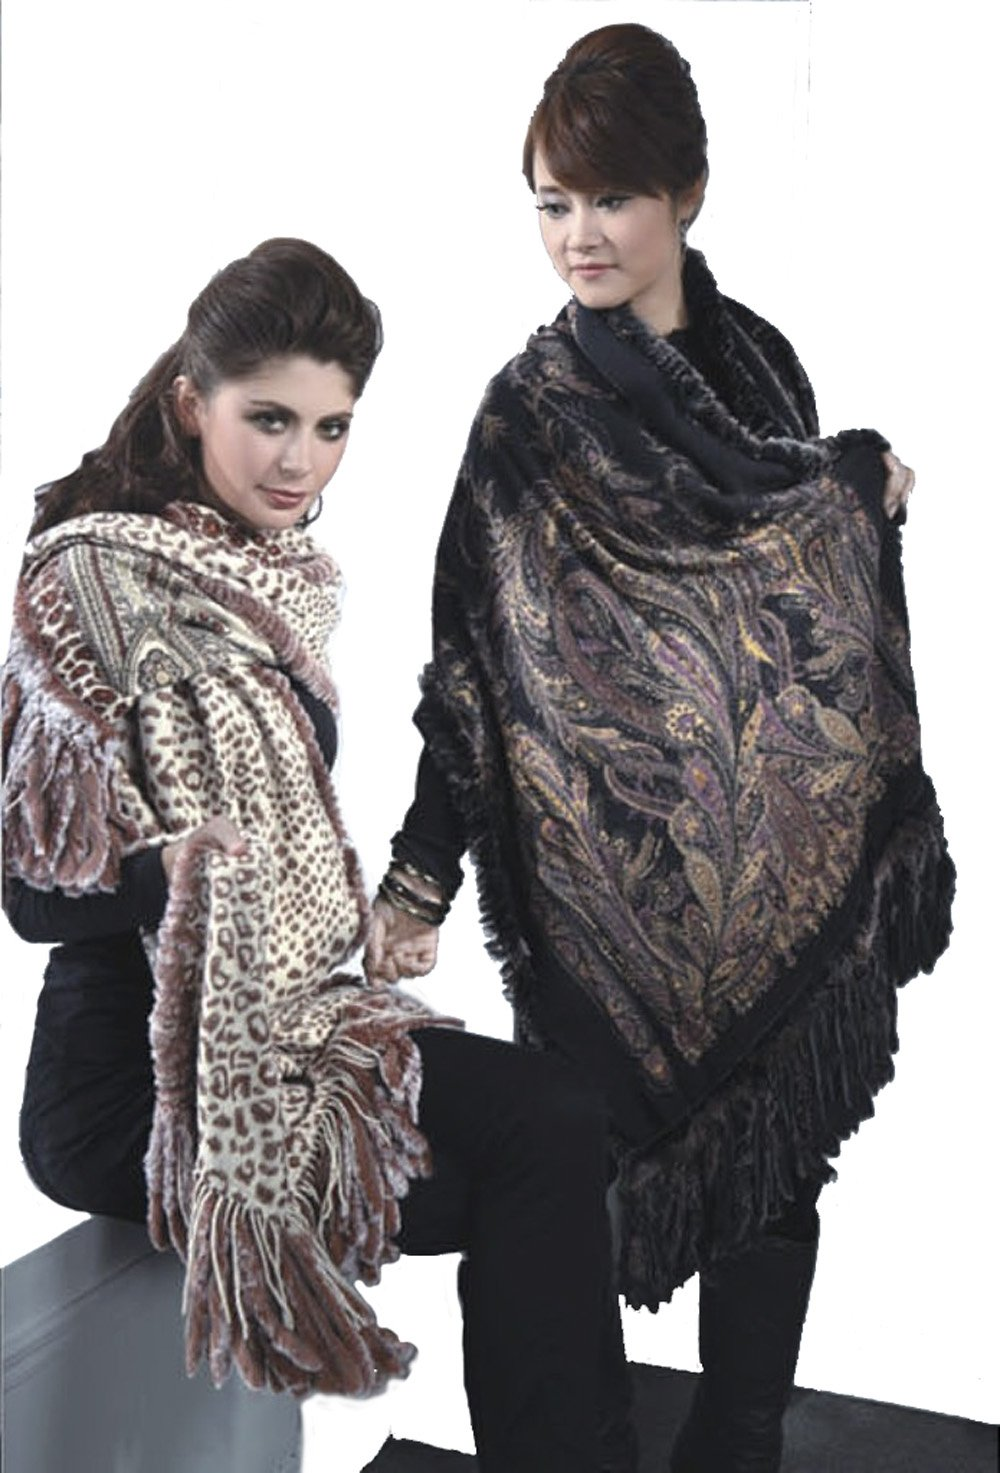 Cashmere Pashmina Group-Cashmere Shawl Scarf Wrap Stole (Solid/ Reversible Print w/ Genuine Fur) - Black